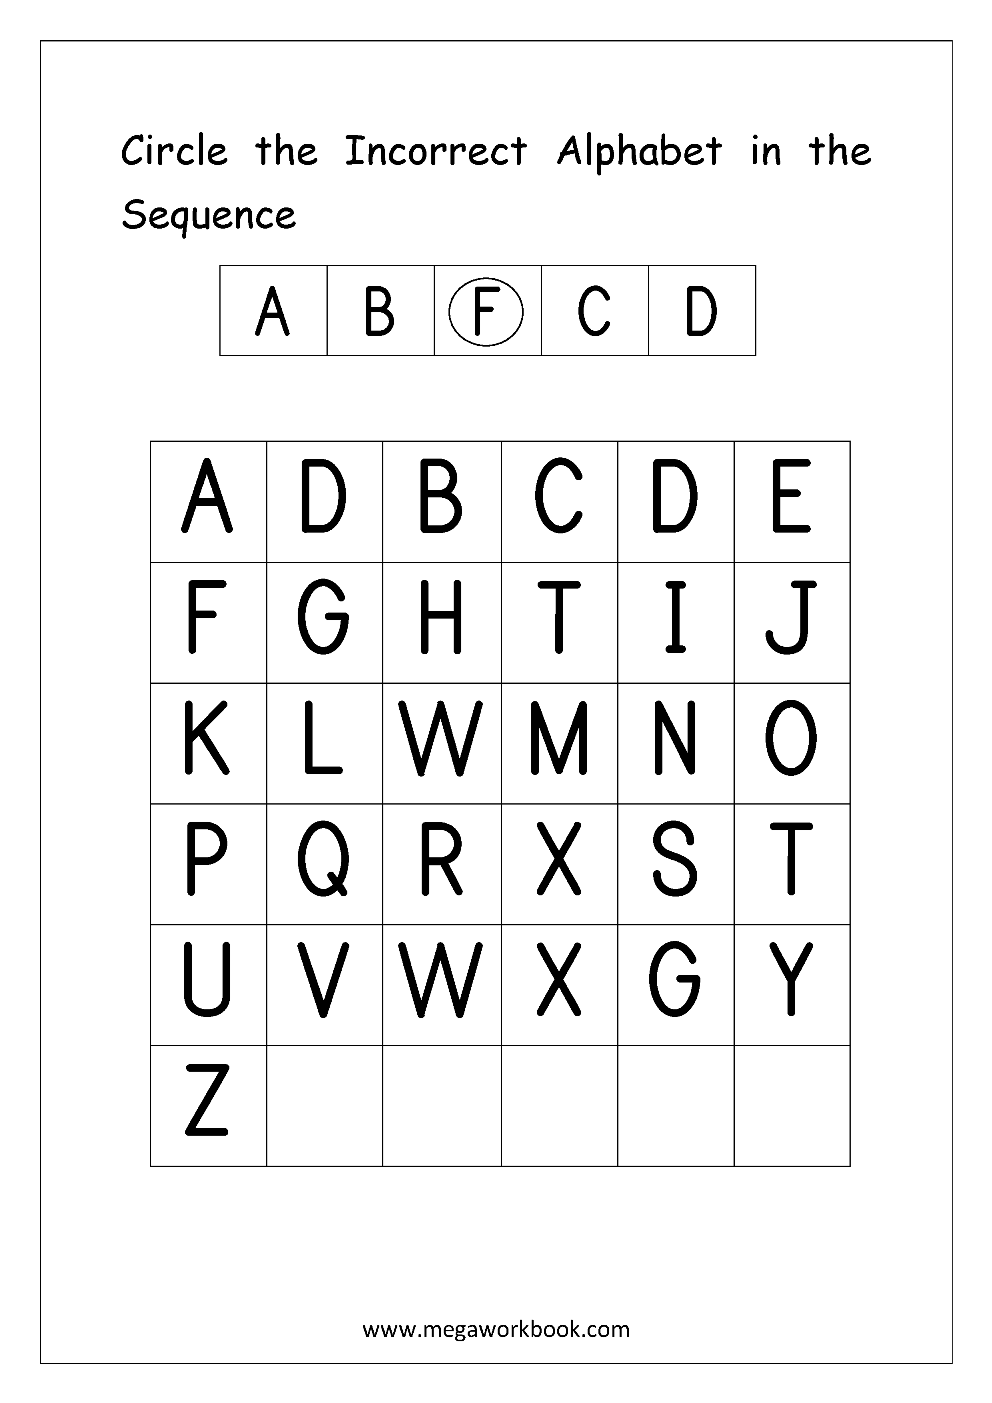 how to write numbers in letters in english